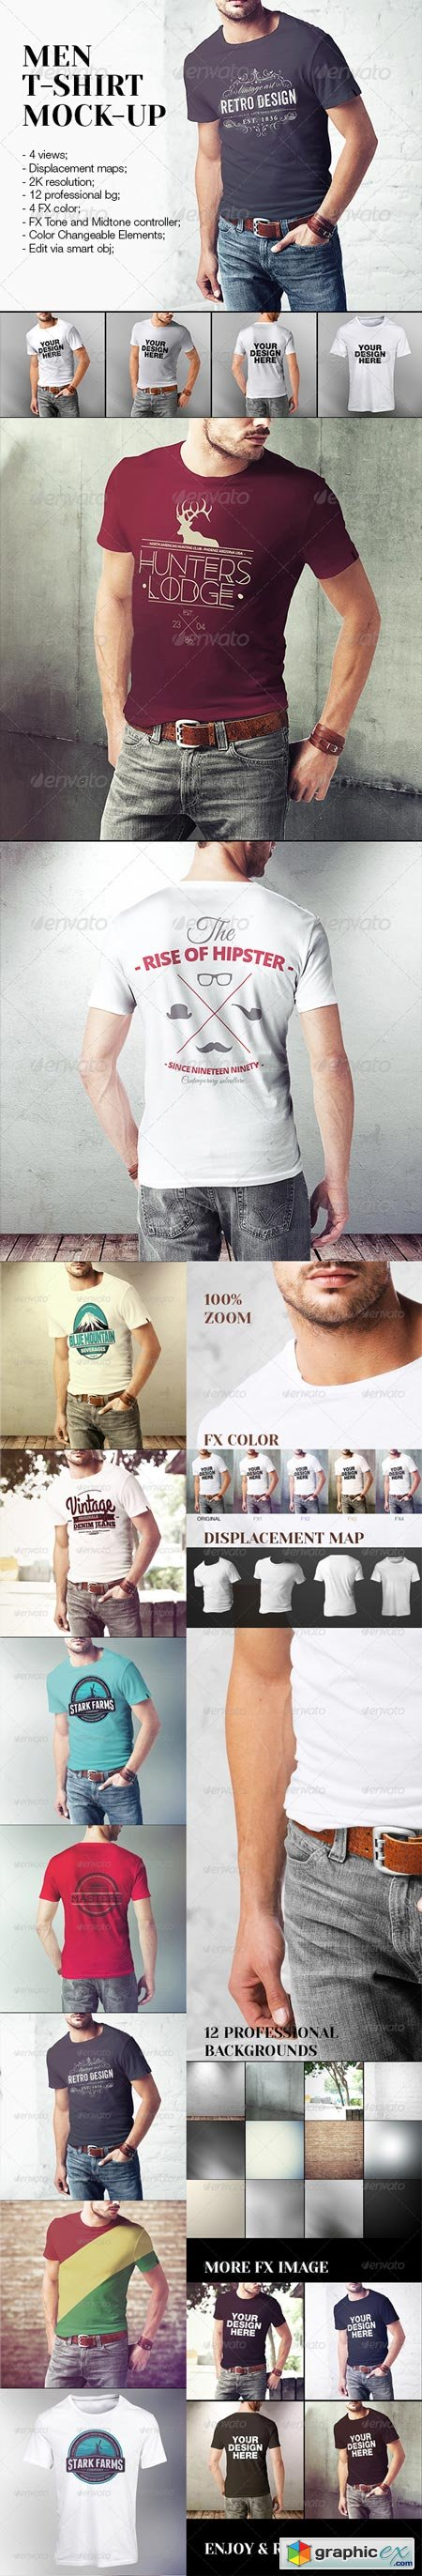 GraphicRiver Men T-Shirt Mock-Up 7876525